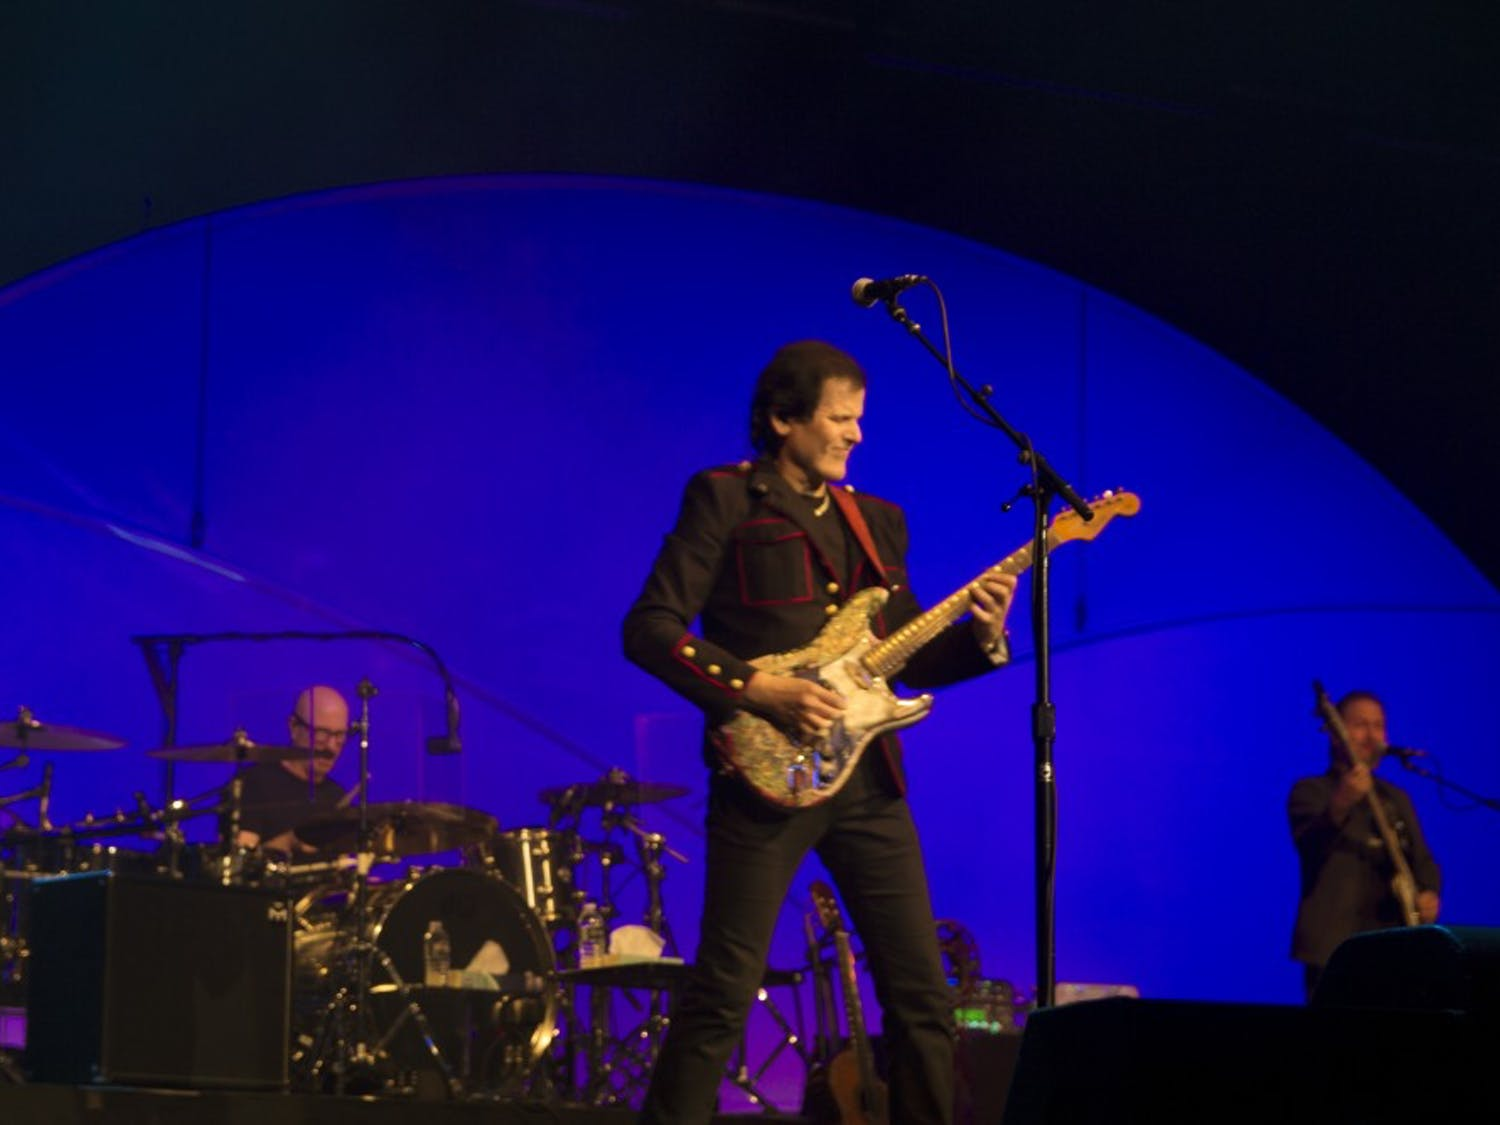 Guitarist Trevor Rabin taking a solo during a song. Saturday night rock icons Jon Anderson, Trevor Rabin and Rick Wakeman rocked the Seneca Niagara Casino, playing songs from their vast catalogue.